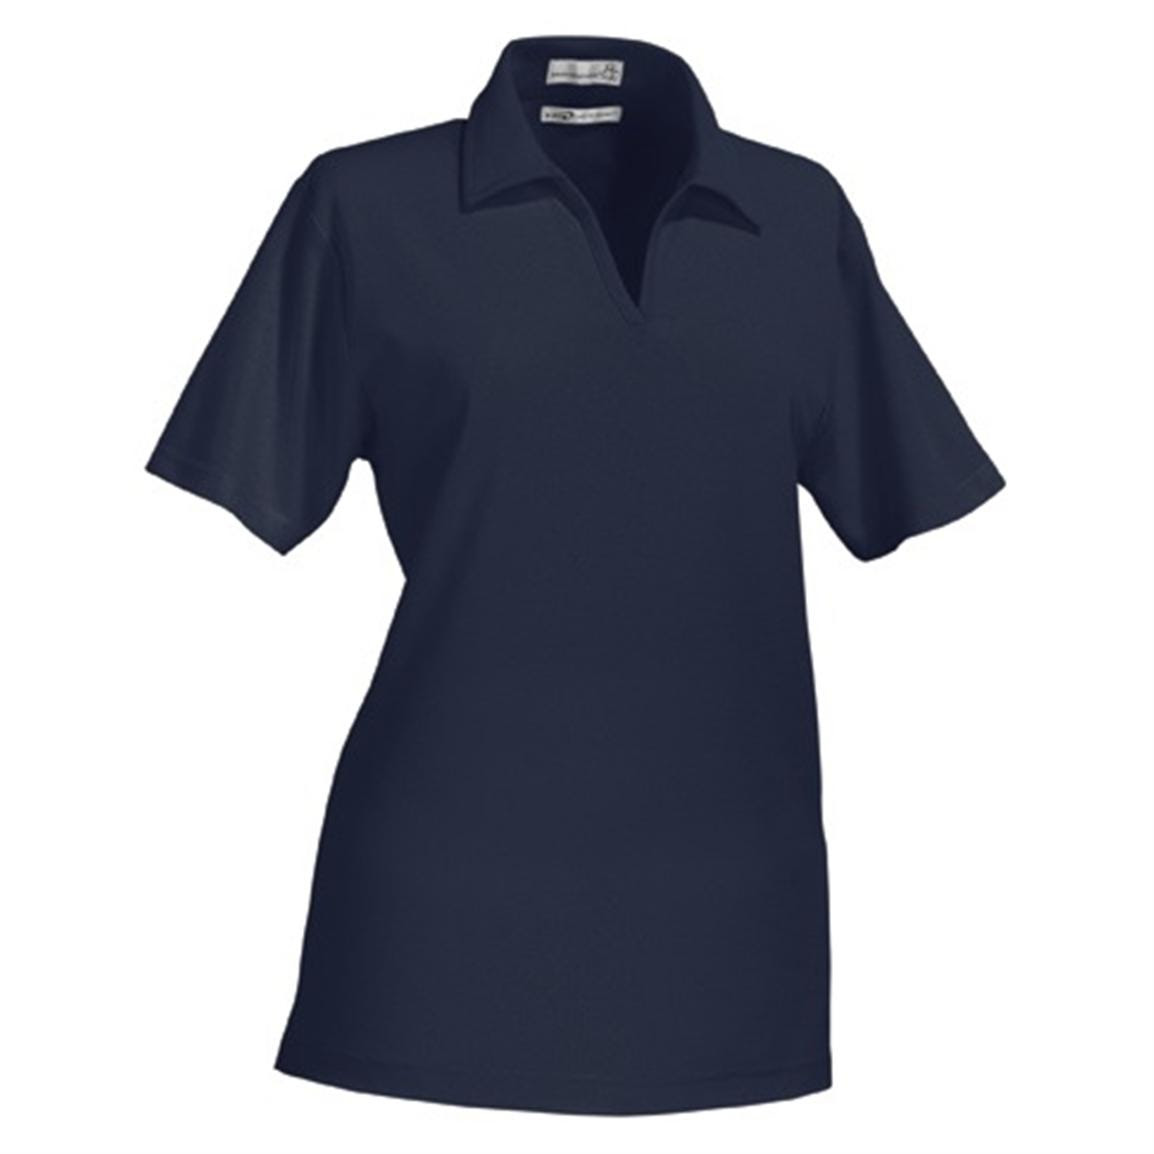 women's performance pique polo shirt from jockey®  209647